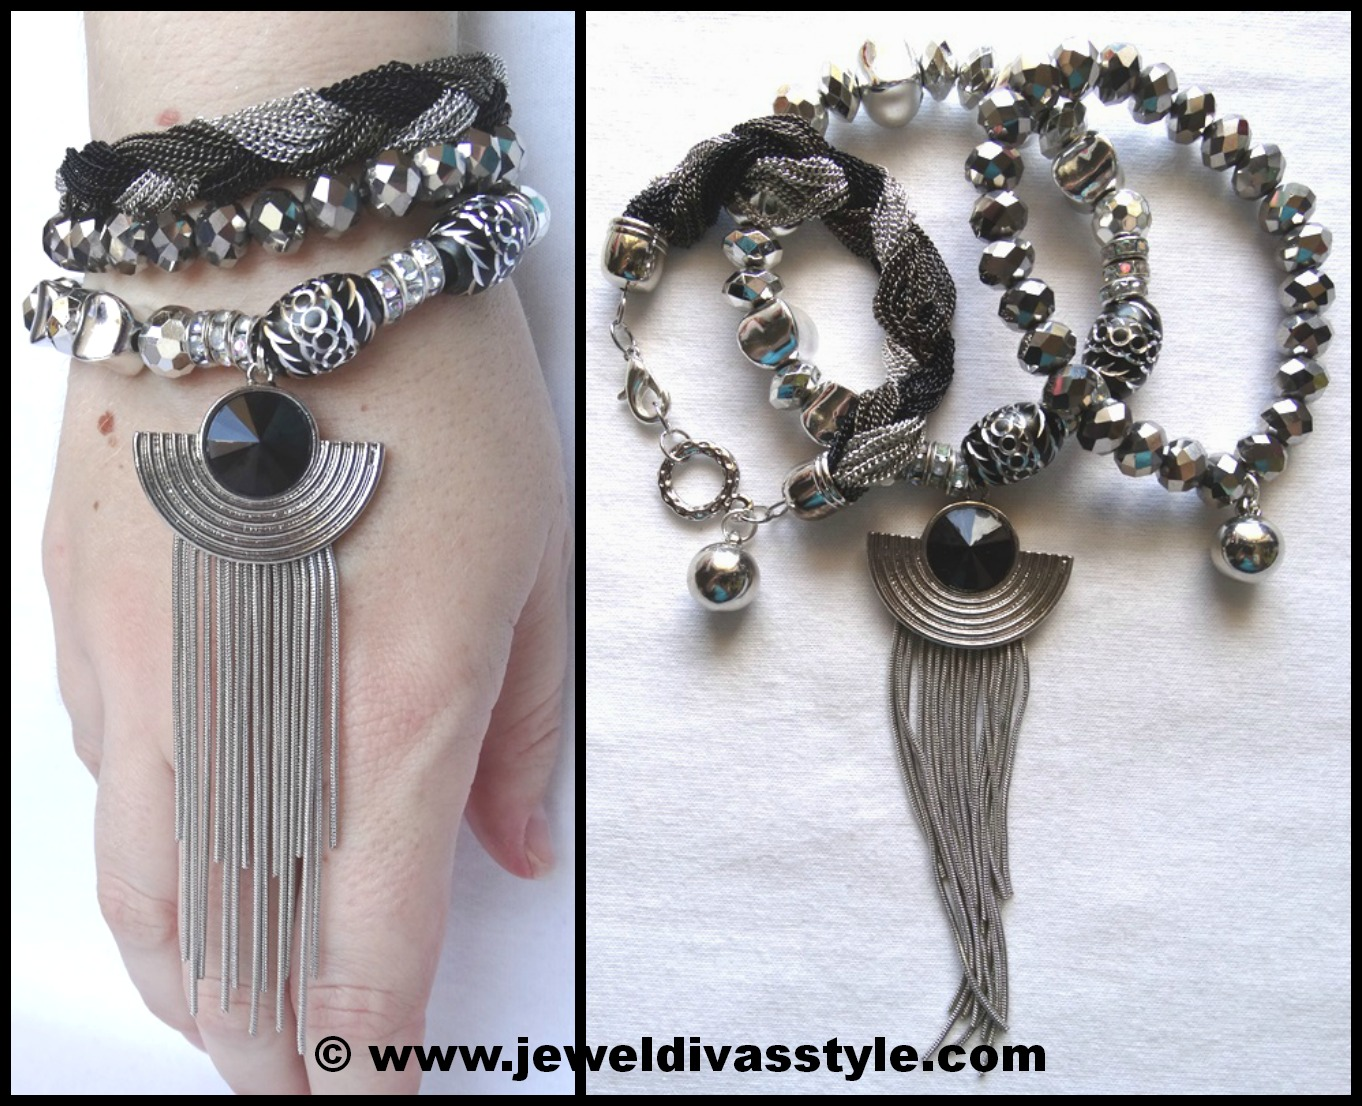 DESIGNER INSPIRED: My brand new bracelet stacks